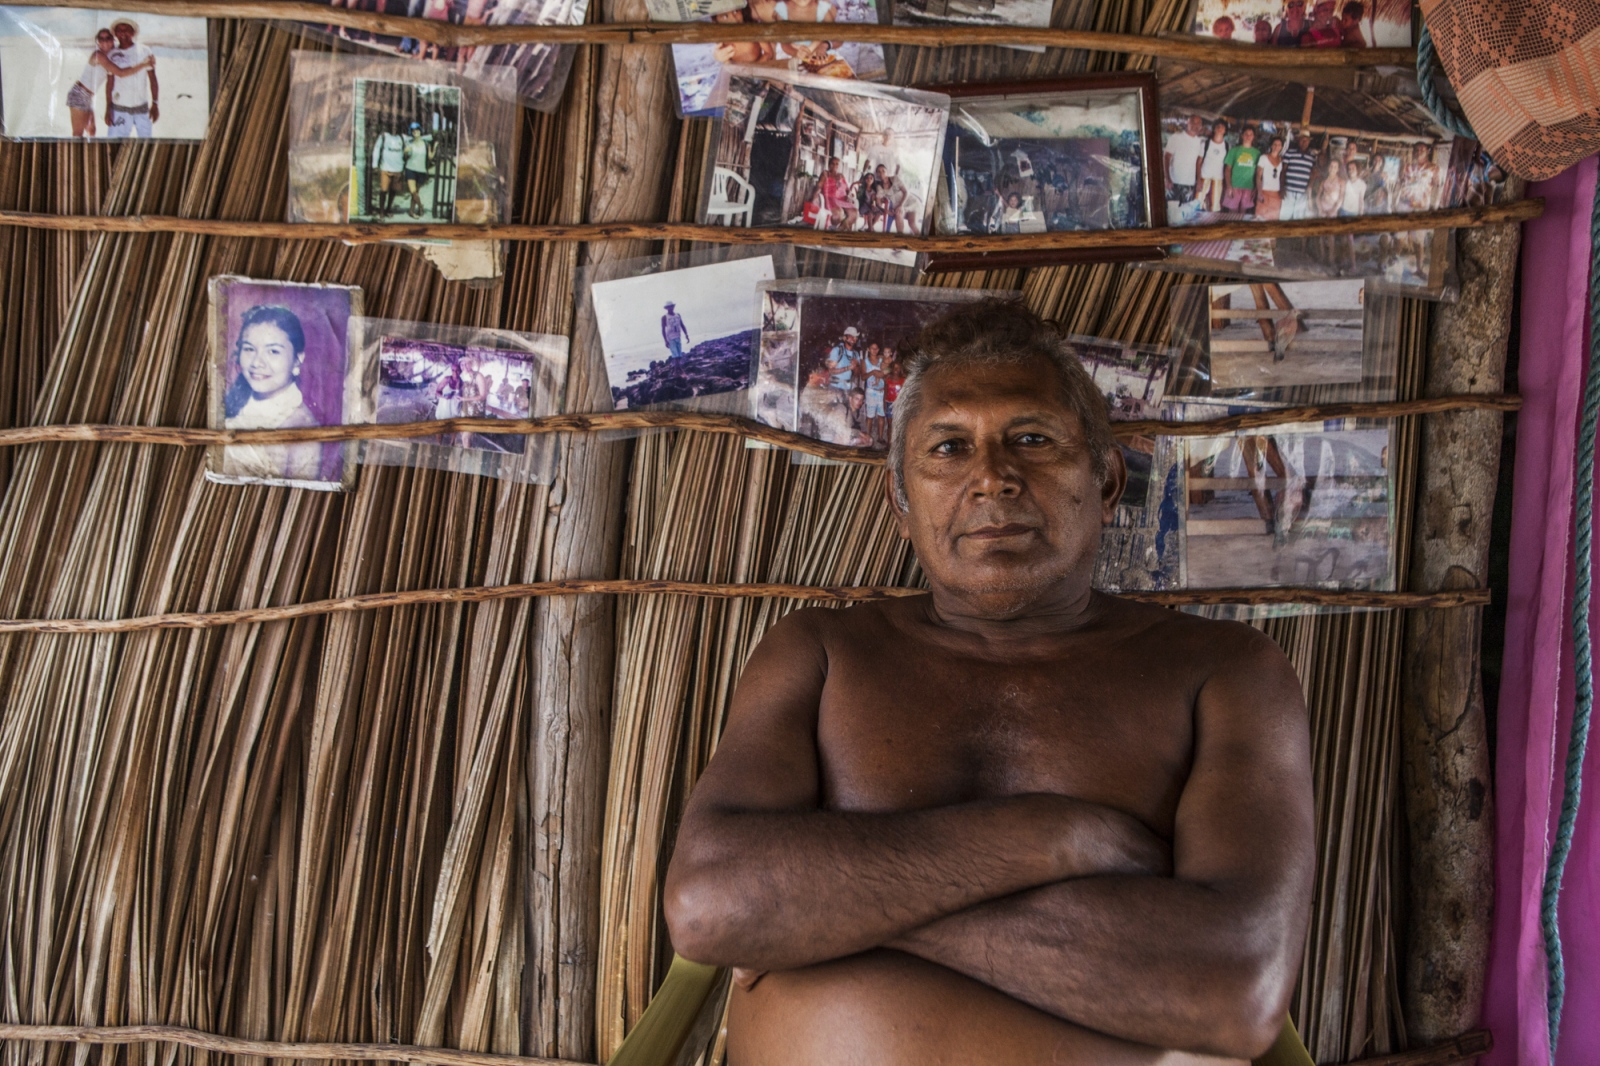 "Raimundo Brito, 61, the oldest member of the Queimada dos Britos community, says ""I will never leave the island even if they offer me a truck full of money"". He was born in the oasis, lived all his life there and buried his father in the local cemetery.  The Brazilian Institute of the Environment and Natural Resources (IBAMA) is planning to remove them since they live in a National Park. The residents refuse to move since many of them were born there and lived all their lives in the Queimada. They claim that more than a threat, they are a protection to the Lençois do Maranhão."